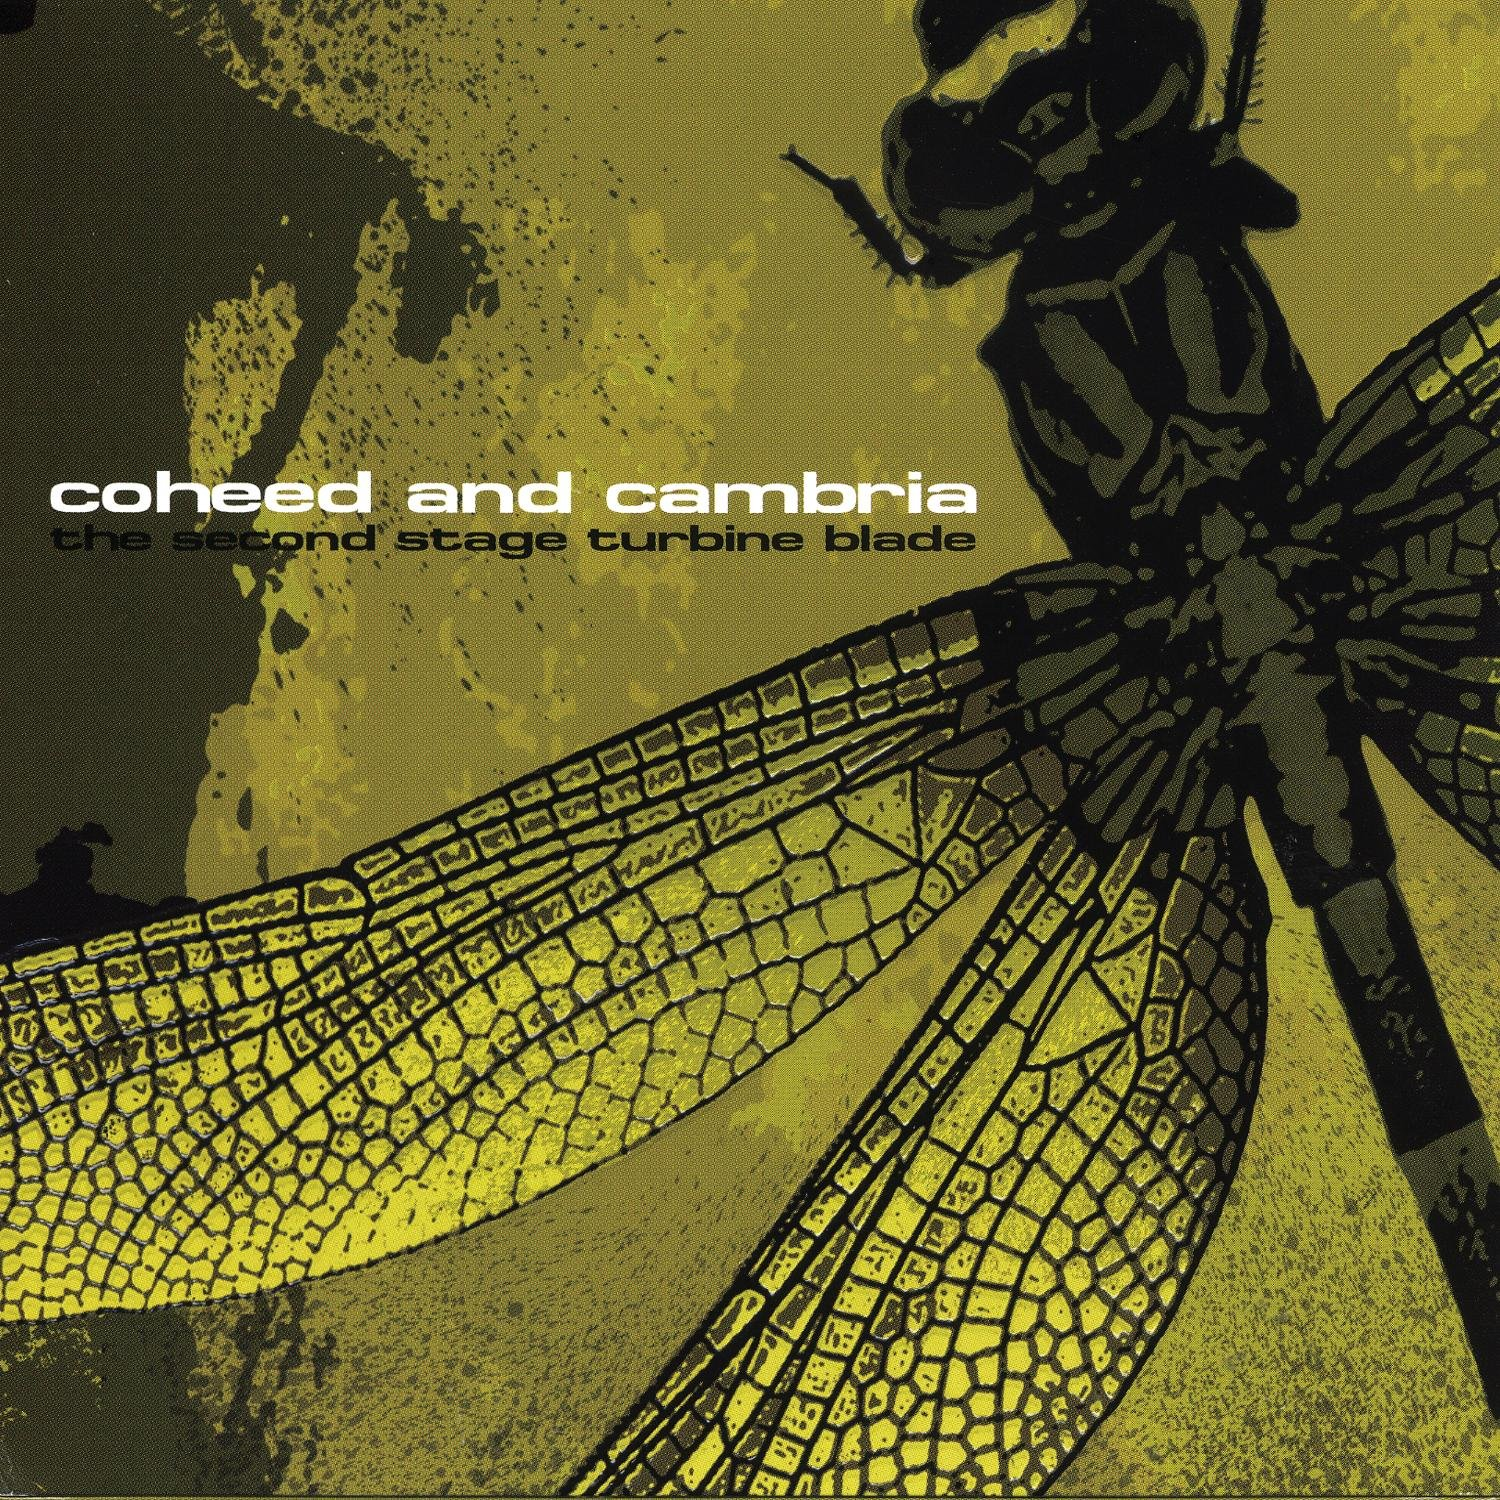 Second Stage Turbine Blade (Re-Issue) by Coheed & Cambria